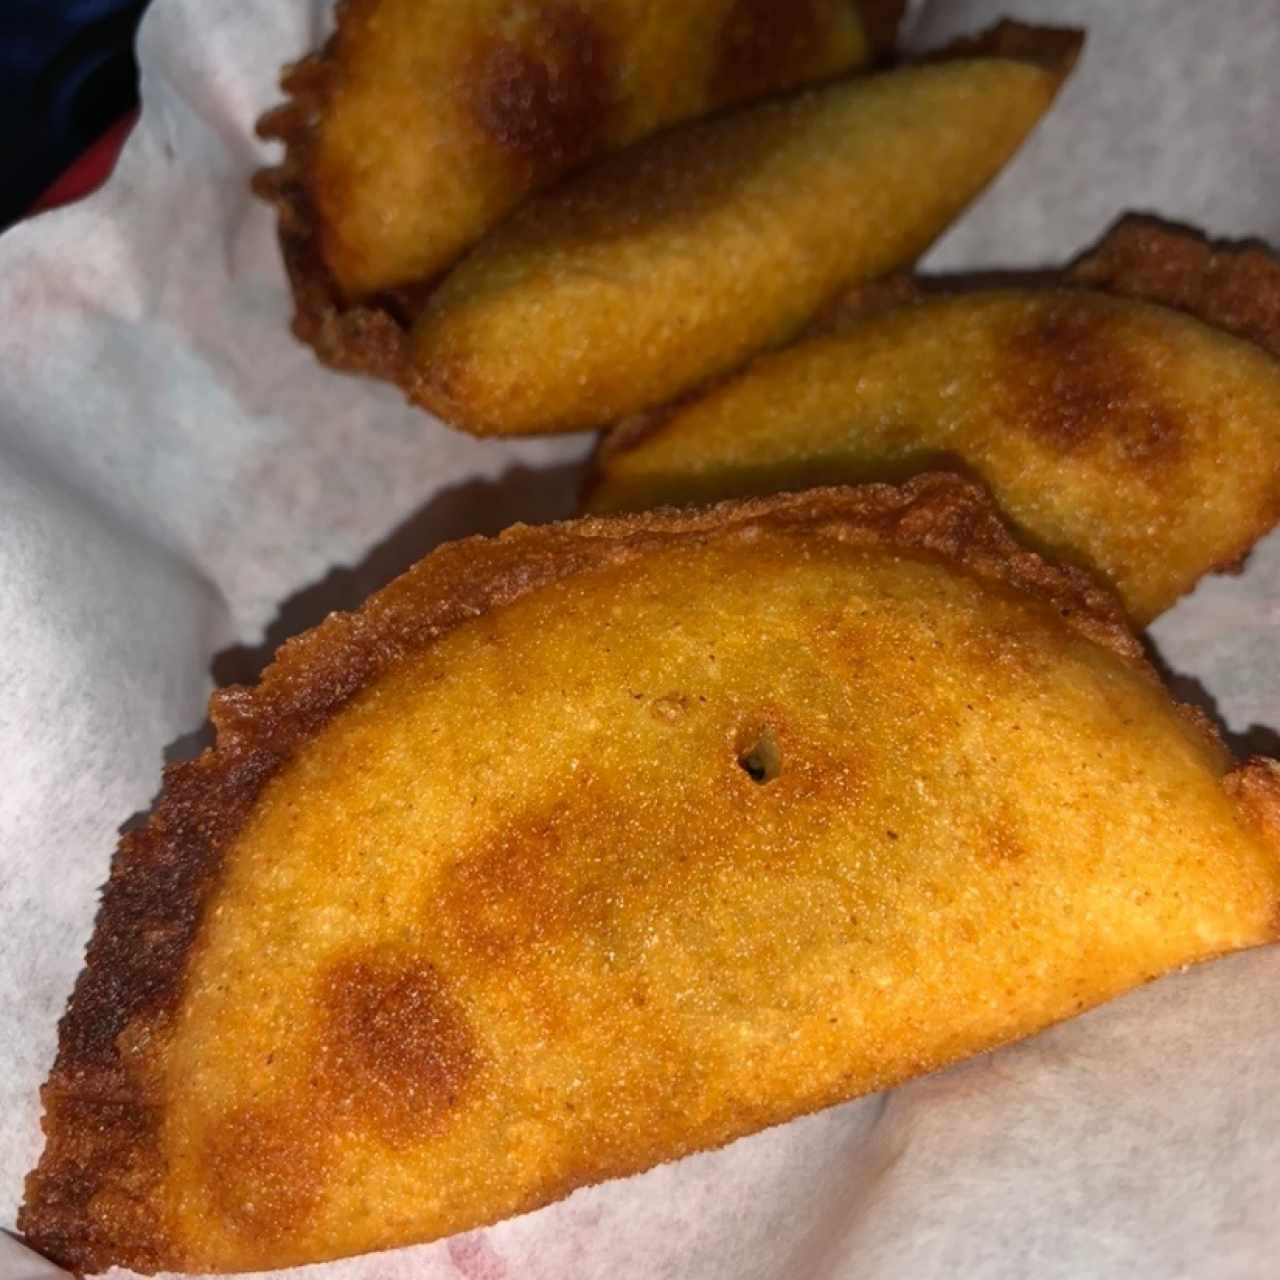 Mini empanaditas de pollo o carne